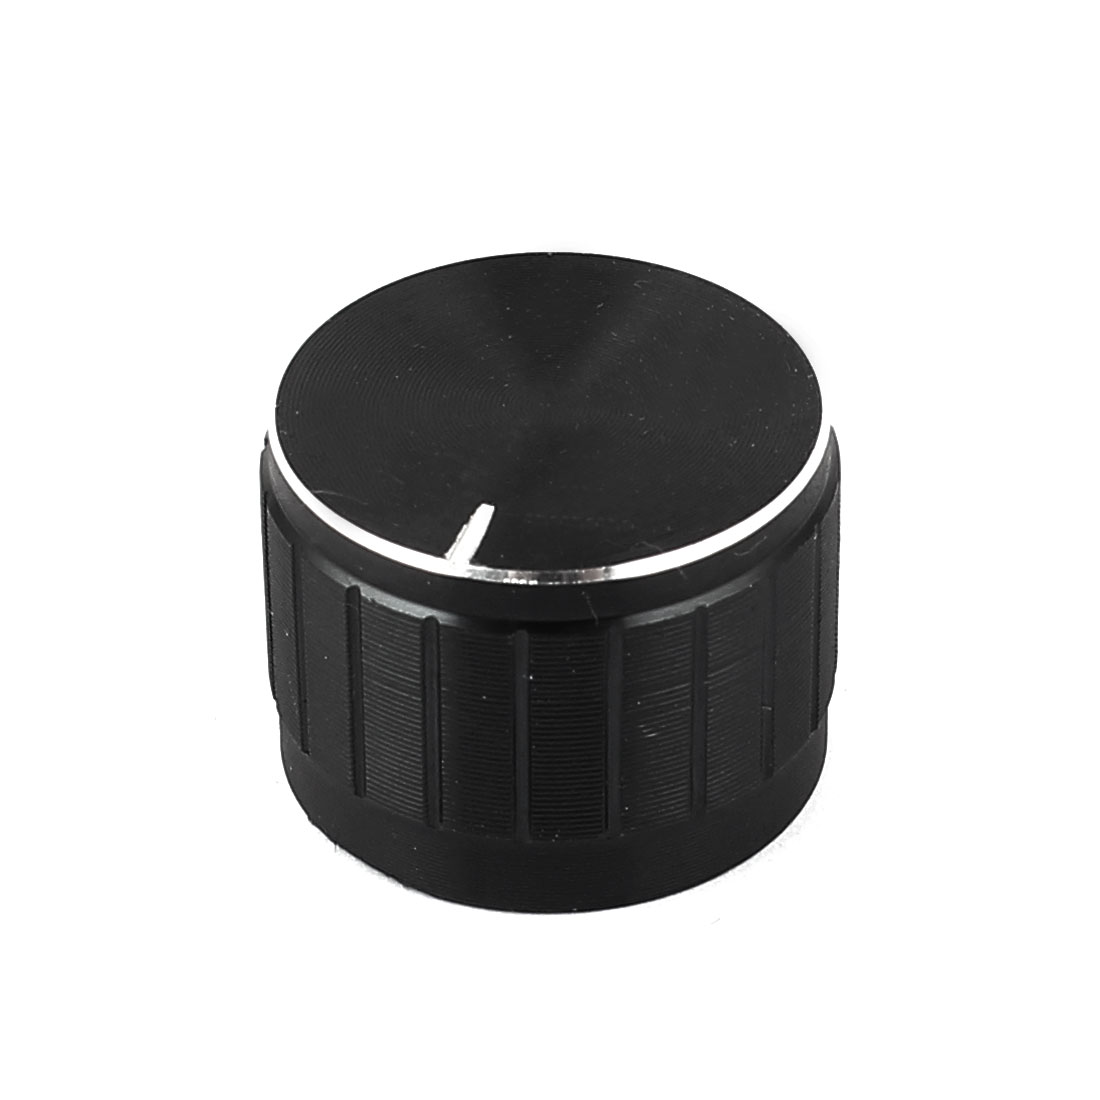 6mm Dia Shaft Metal Shell Potentiometer Pot Rotary Control Knob